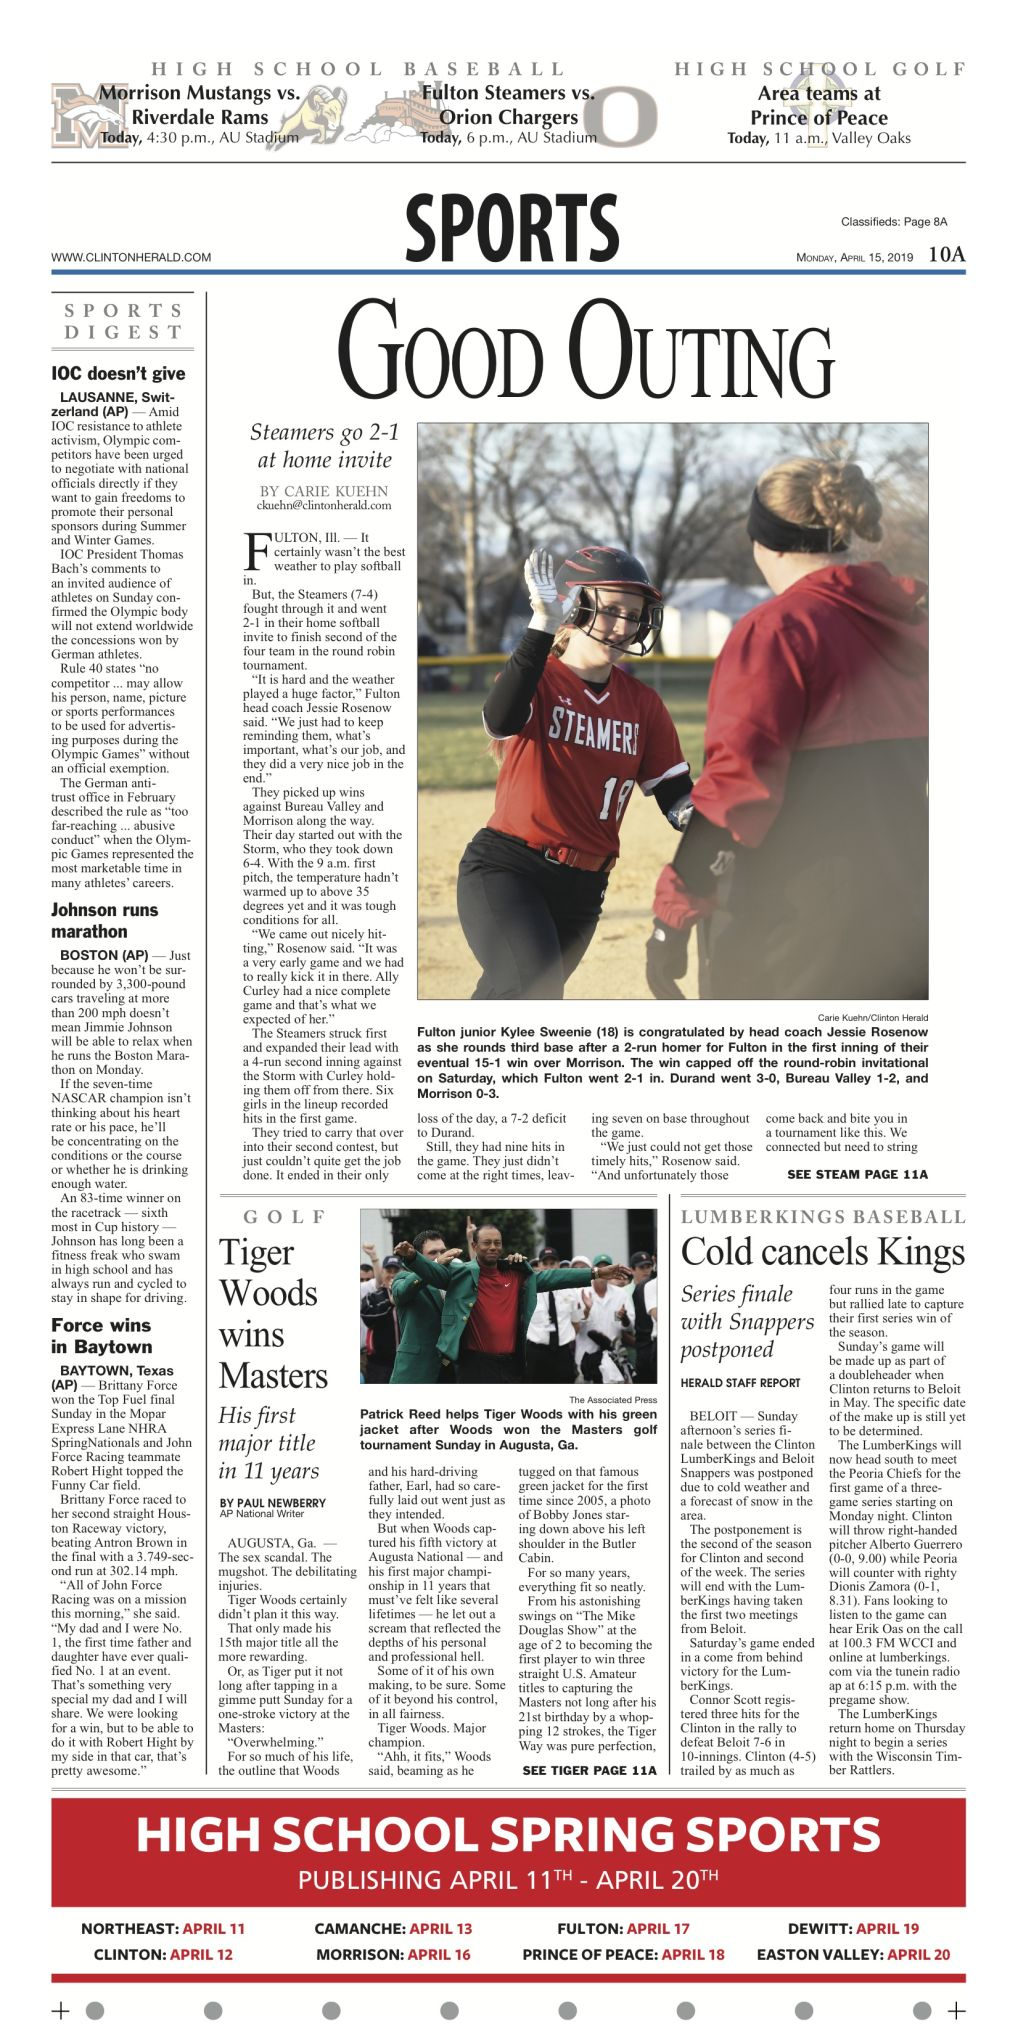 The sports page for April 15, 2019